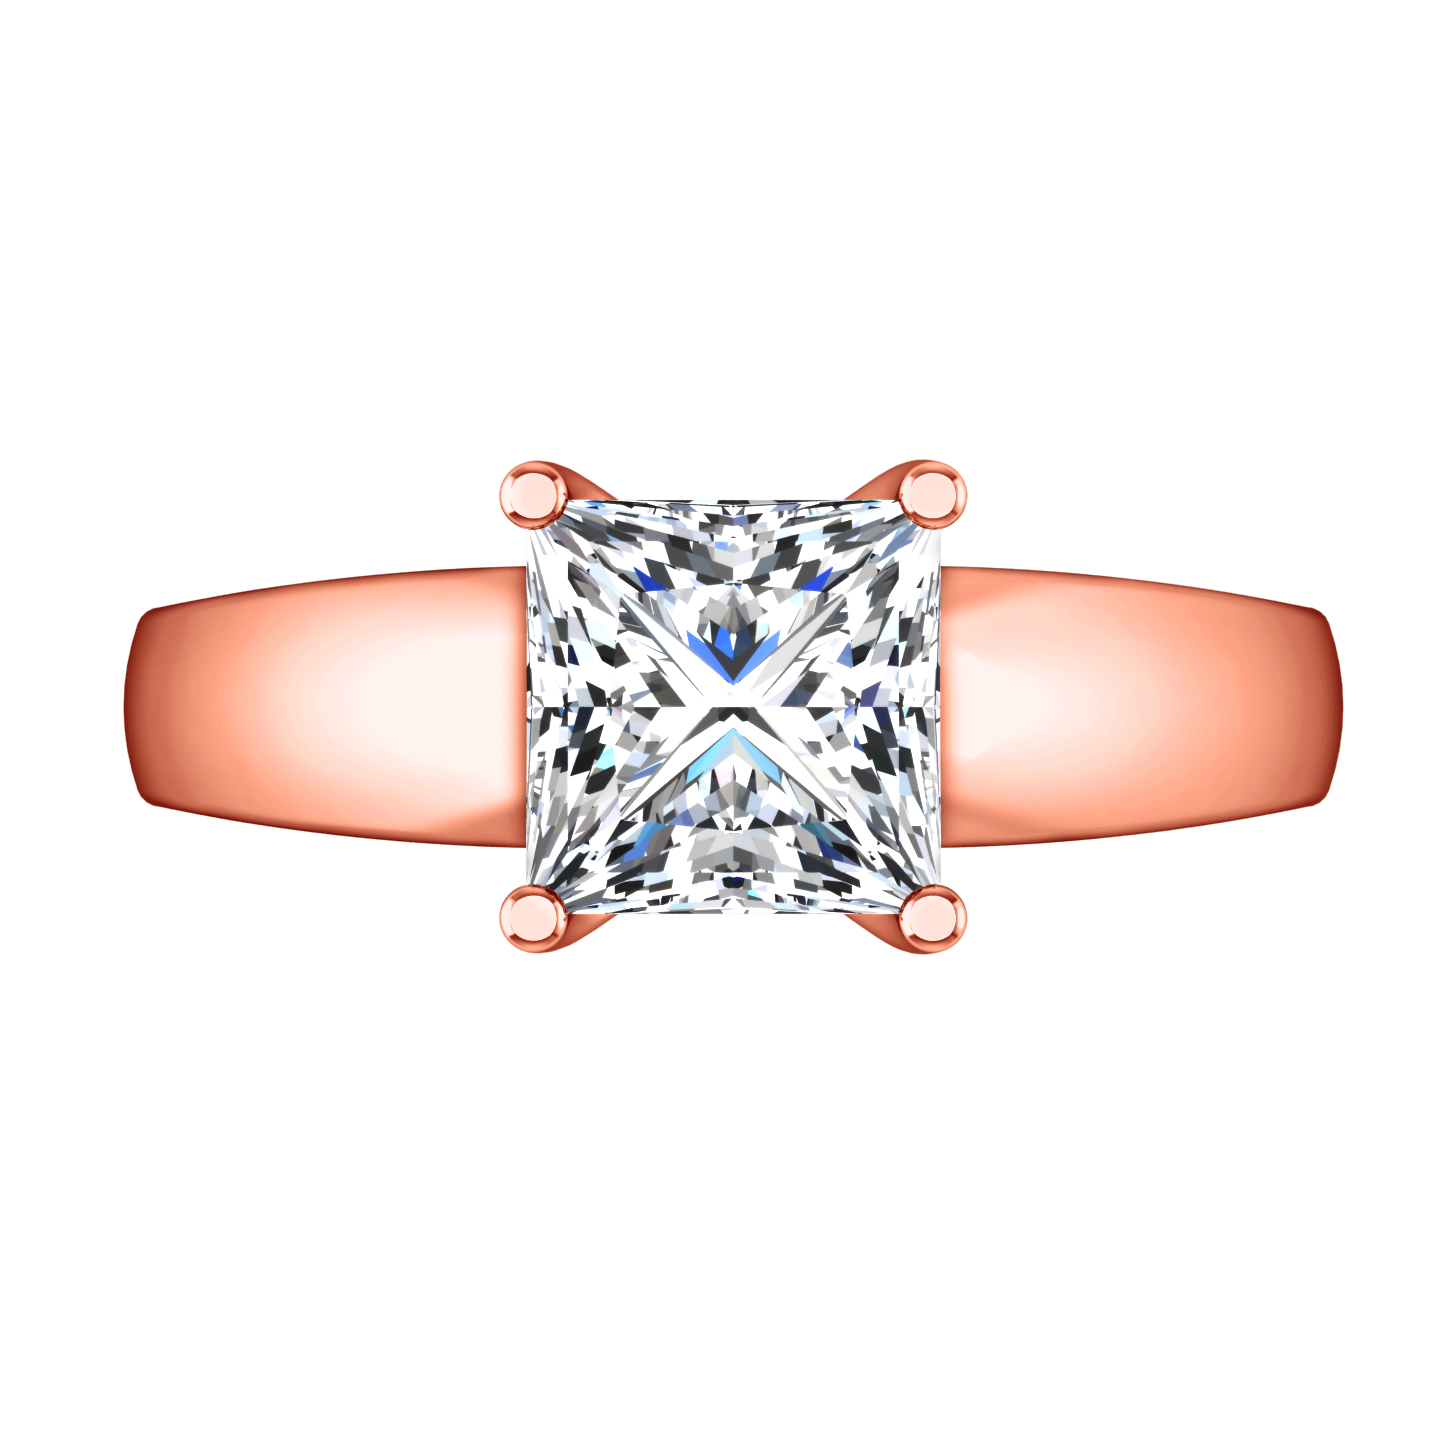 Solitaire Princess Cut Engagement Ring Leyla 14k Rose Gold